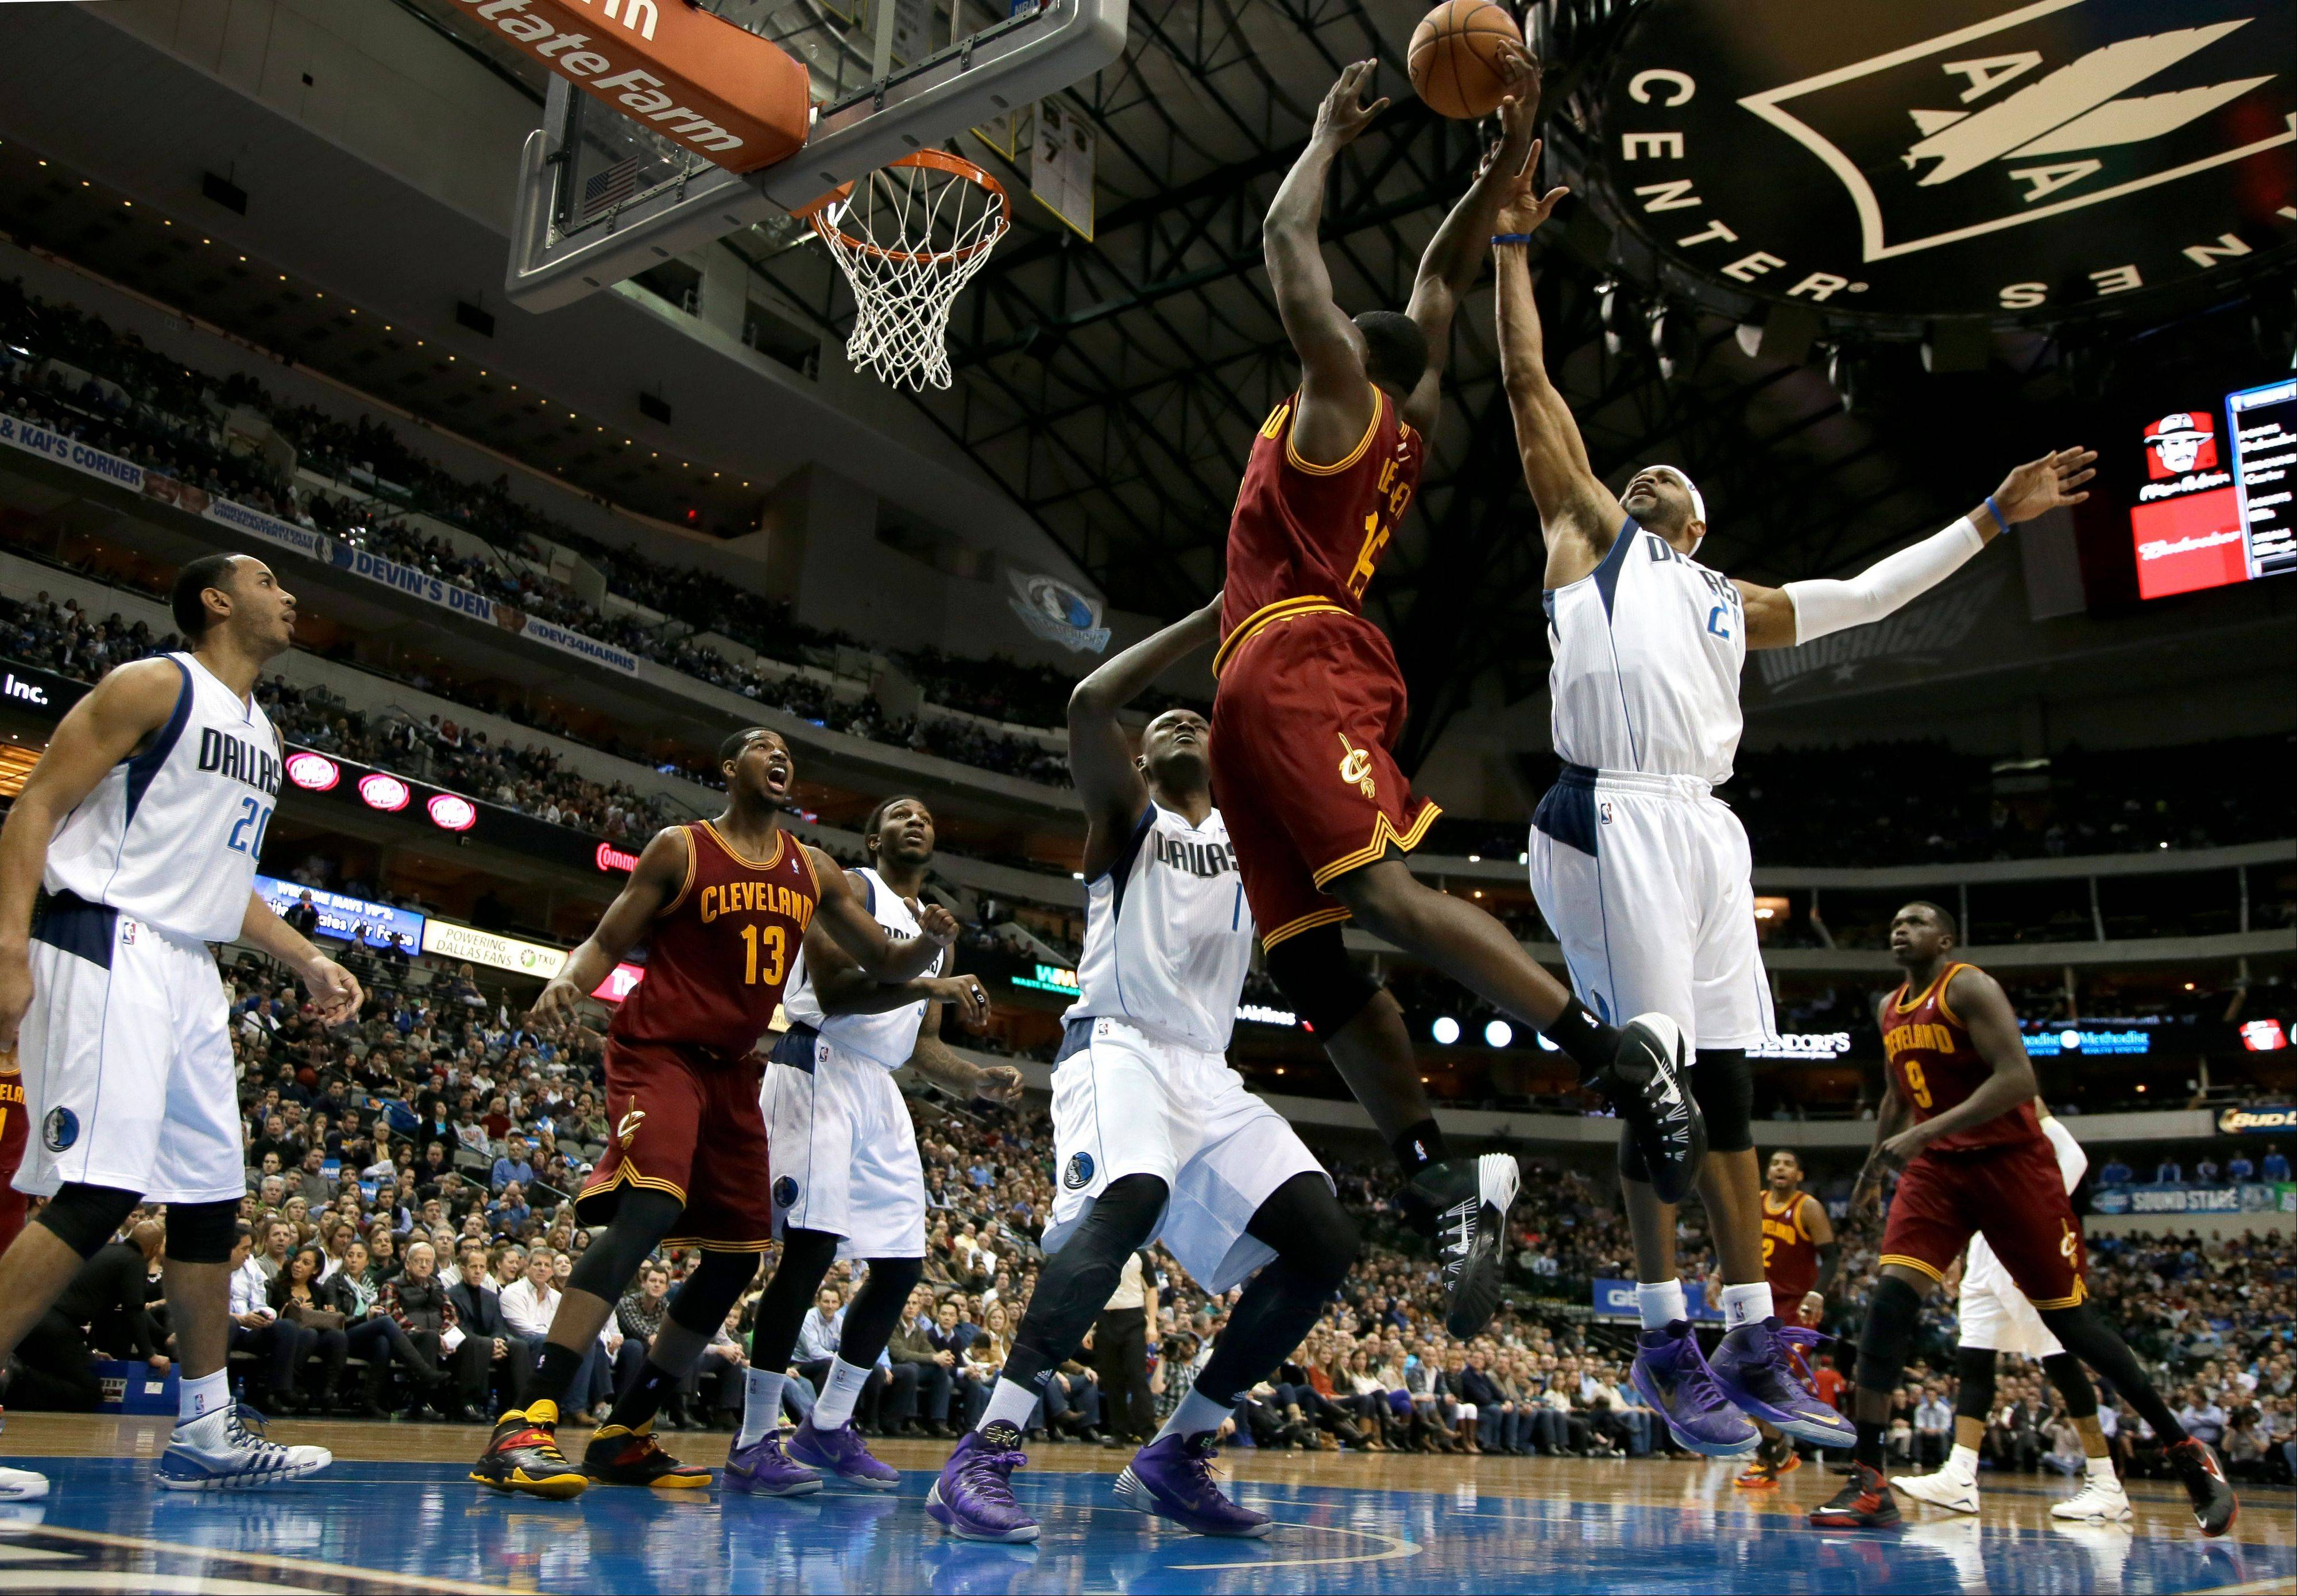 Cleveland Cavaliers forward Anthony Bennett (15) has the ball slapped away on a dunk attempt by Dallas Mavericks� Vince Carter (25) as Devin Harris (20), Tristan Thompson (13), Jae Crowder, center rear, Samuel Dalembert (1) of Haiti and Luol Deng (9) of Sudan watch in the first half of an NBA basketball game, Monday, Feb. 3, 2014, in Dallas.